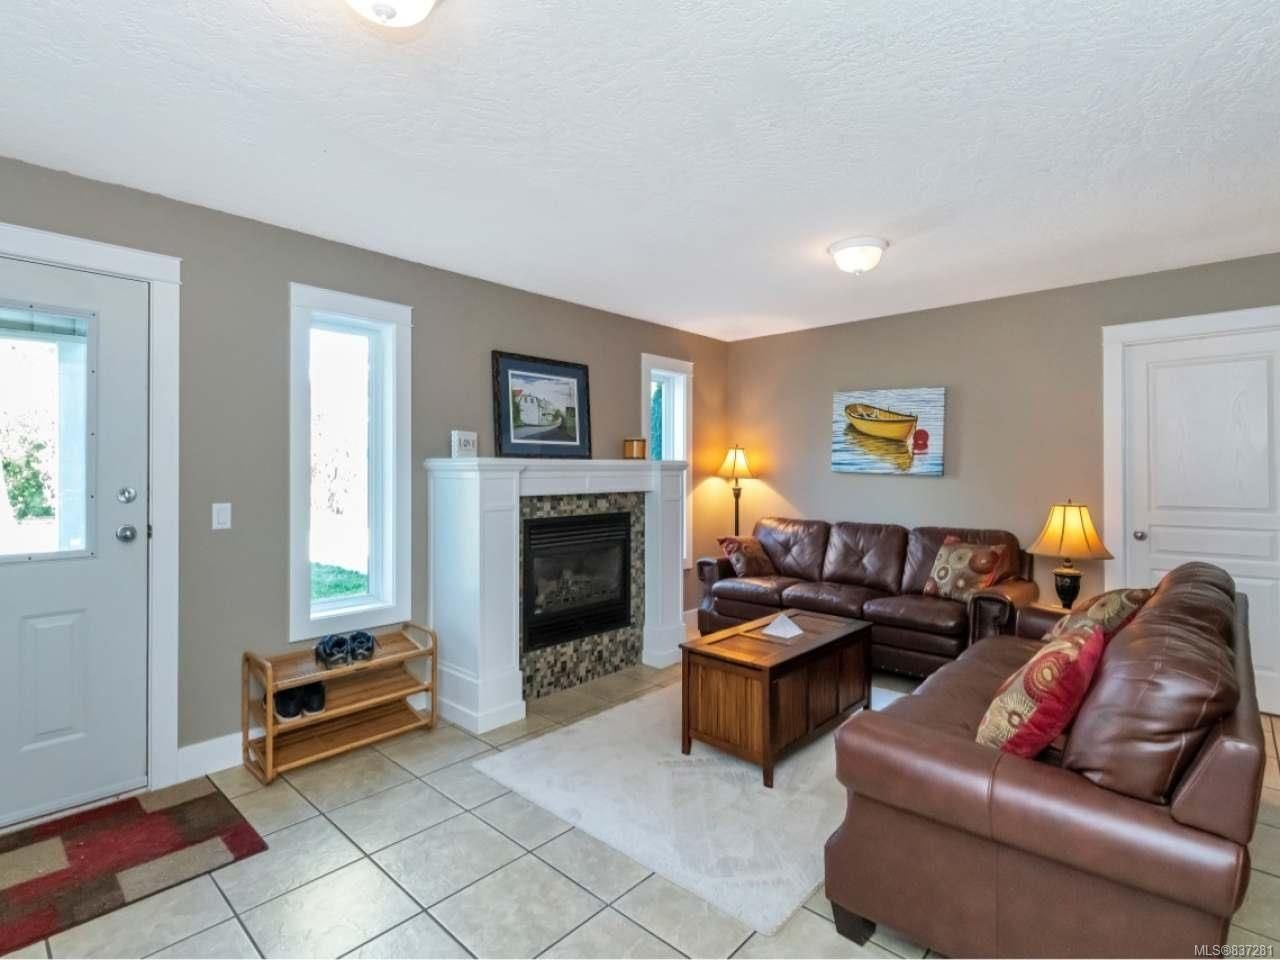 Photo 6: Photos: 925 Lilmac Rd in MILL BAY: ML Mill Bay House for sale (Malahat & Area)  : MLS®# 837281